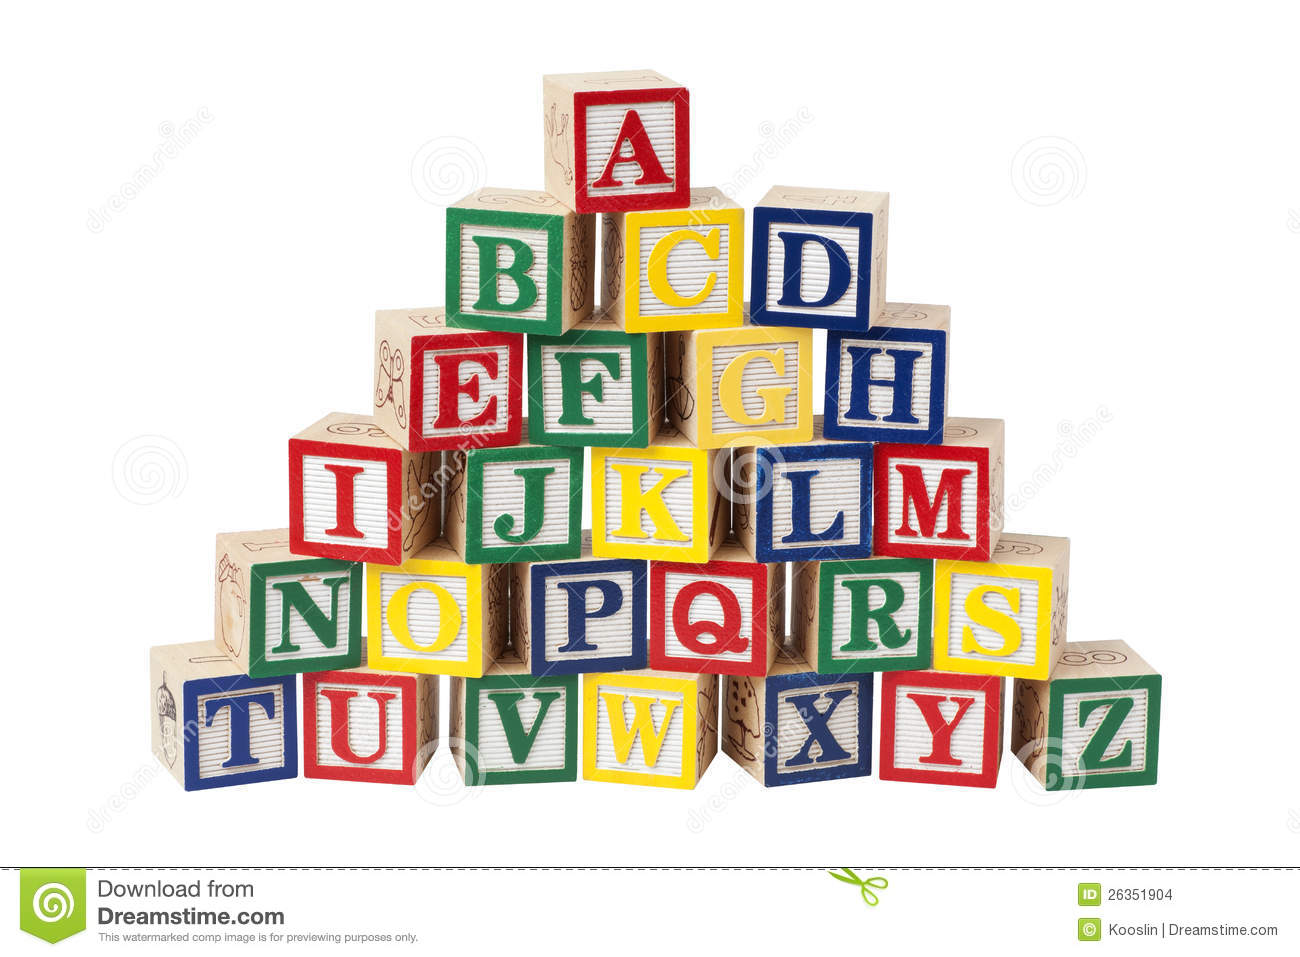 More similar stock images of ` wooden alphabet blocks `